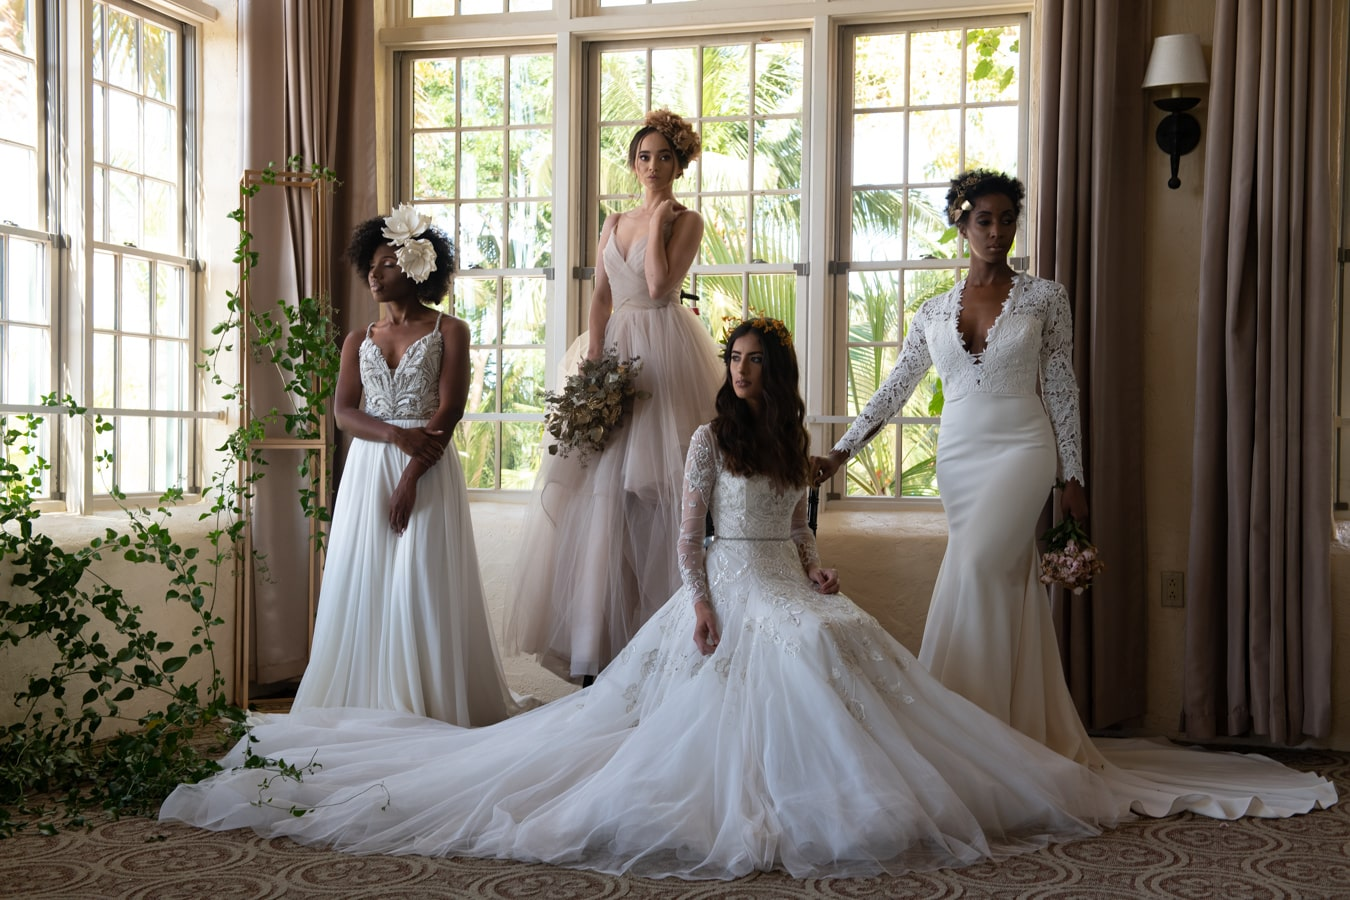 Bridal Fashion Shoot Photographed at the Old Fort Bay Club in The Bahamas, Photography by Scharad Lightbourne for Luxury Destination Wedding network Adriana Weddings